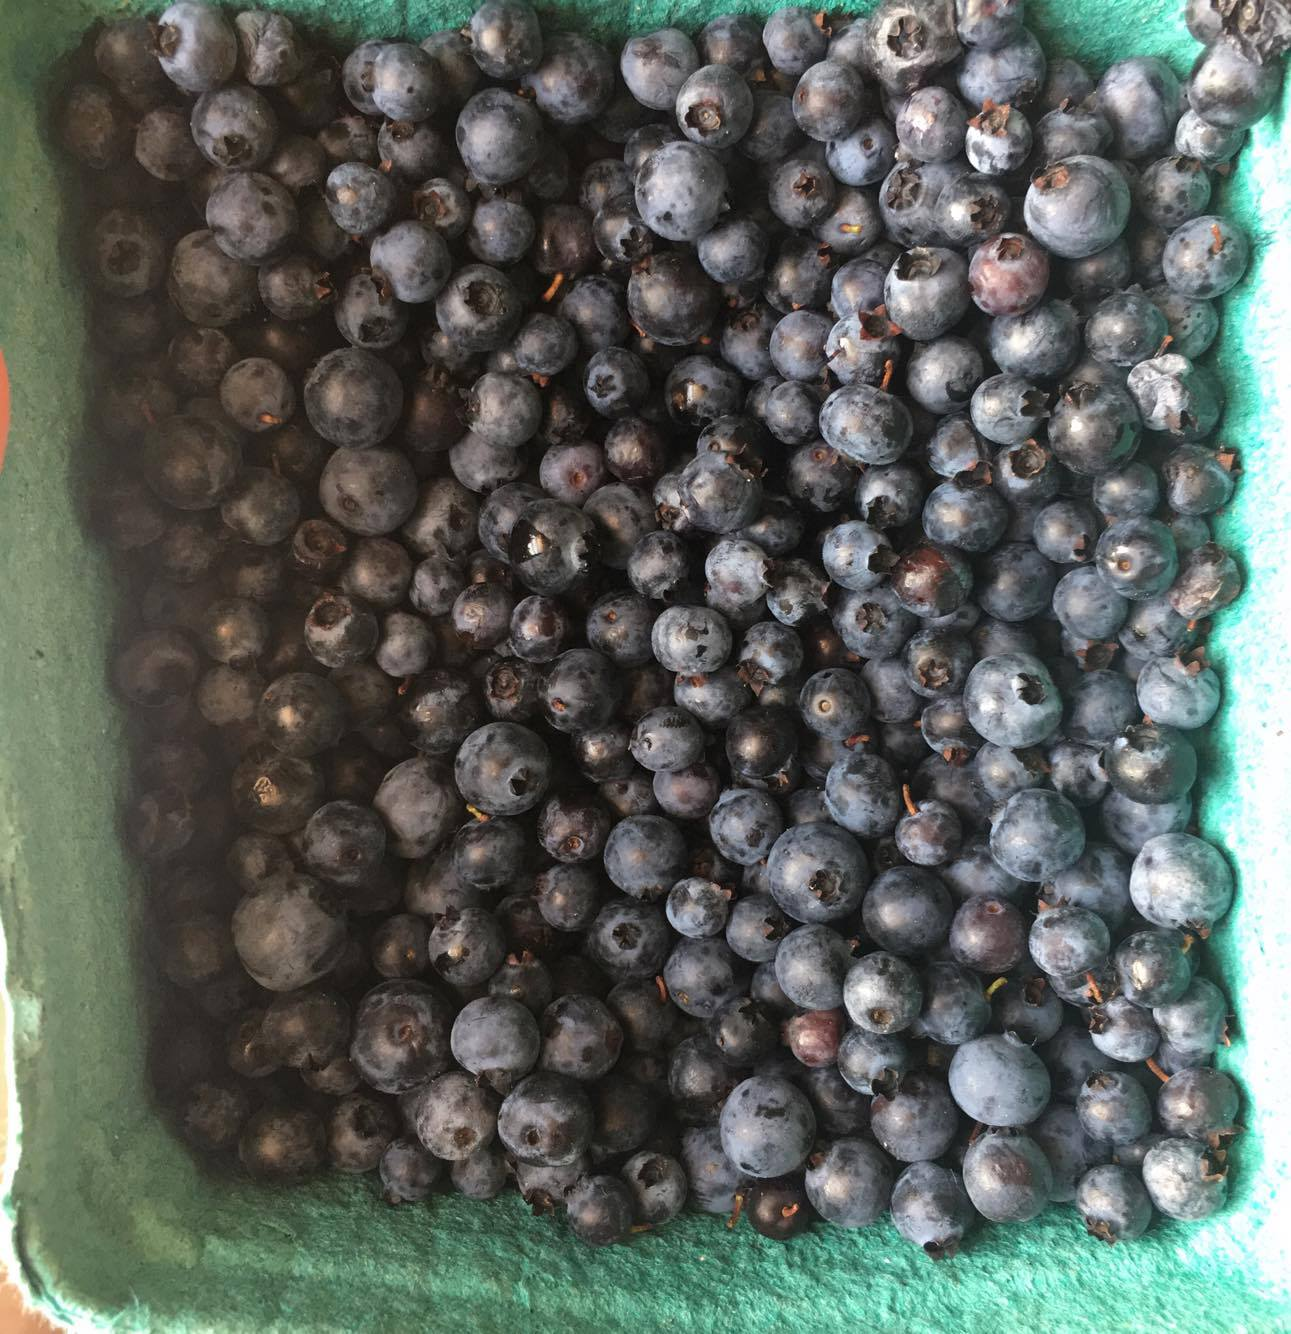 WILD BLUEBERRIES FROM THE MAGICAL WILD FOREST